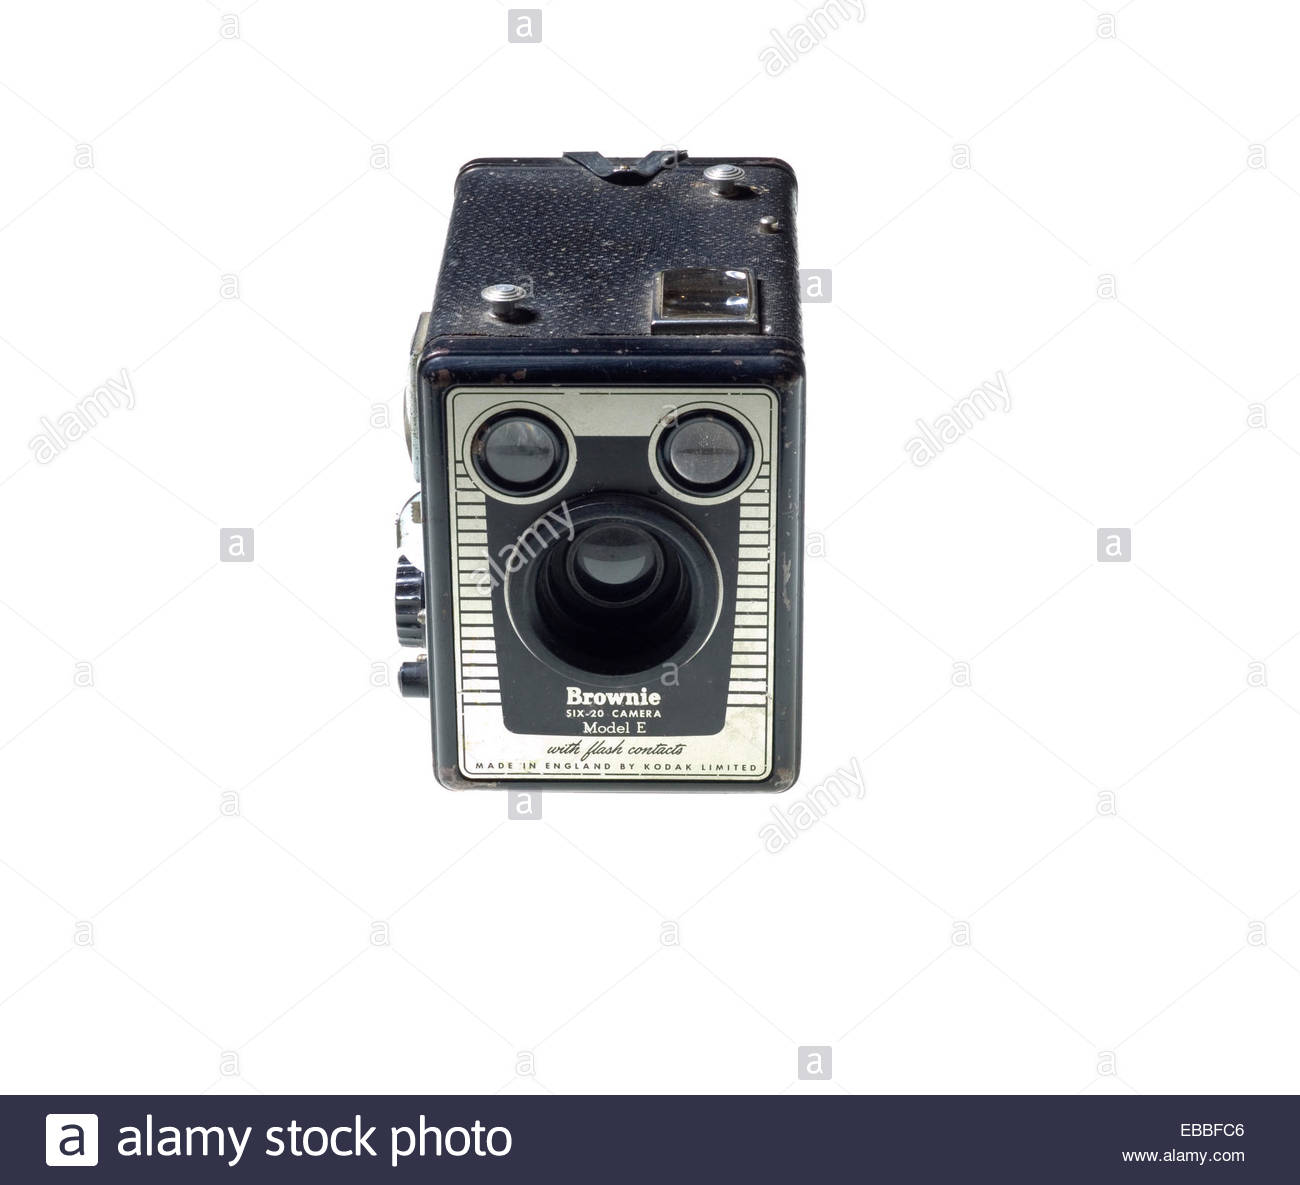 Kodak 'Box Brownie' camera, '620' film size from the 1930's. - Stock Image